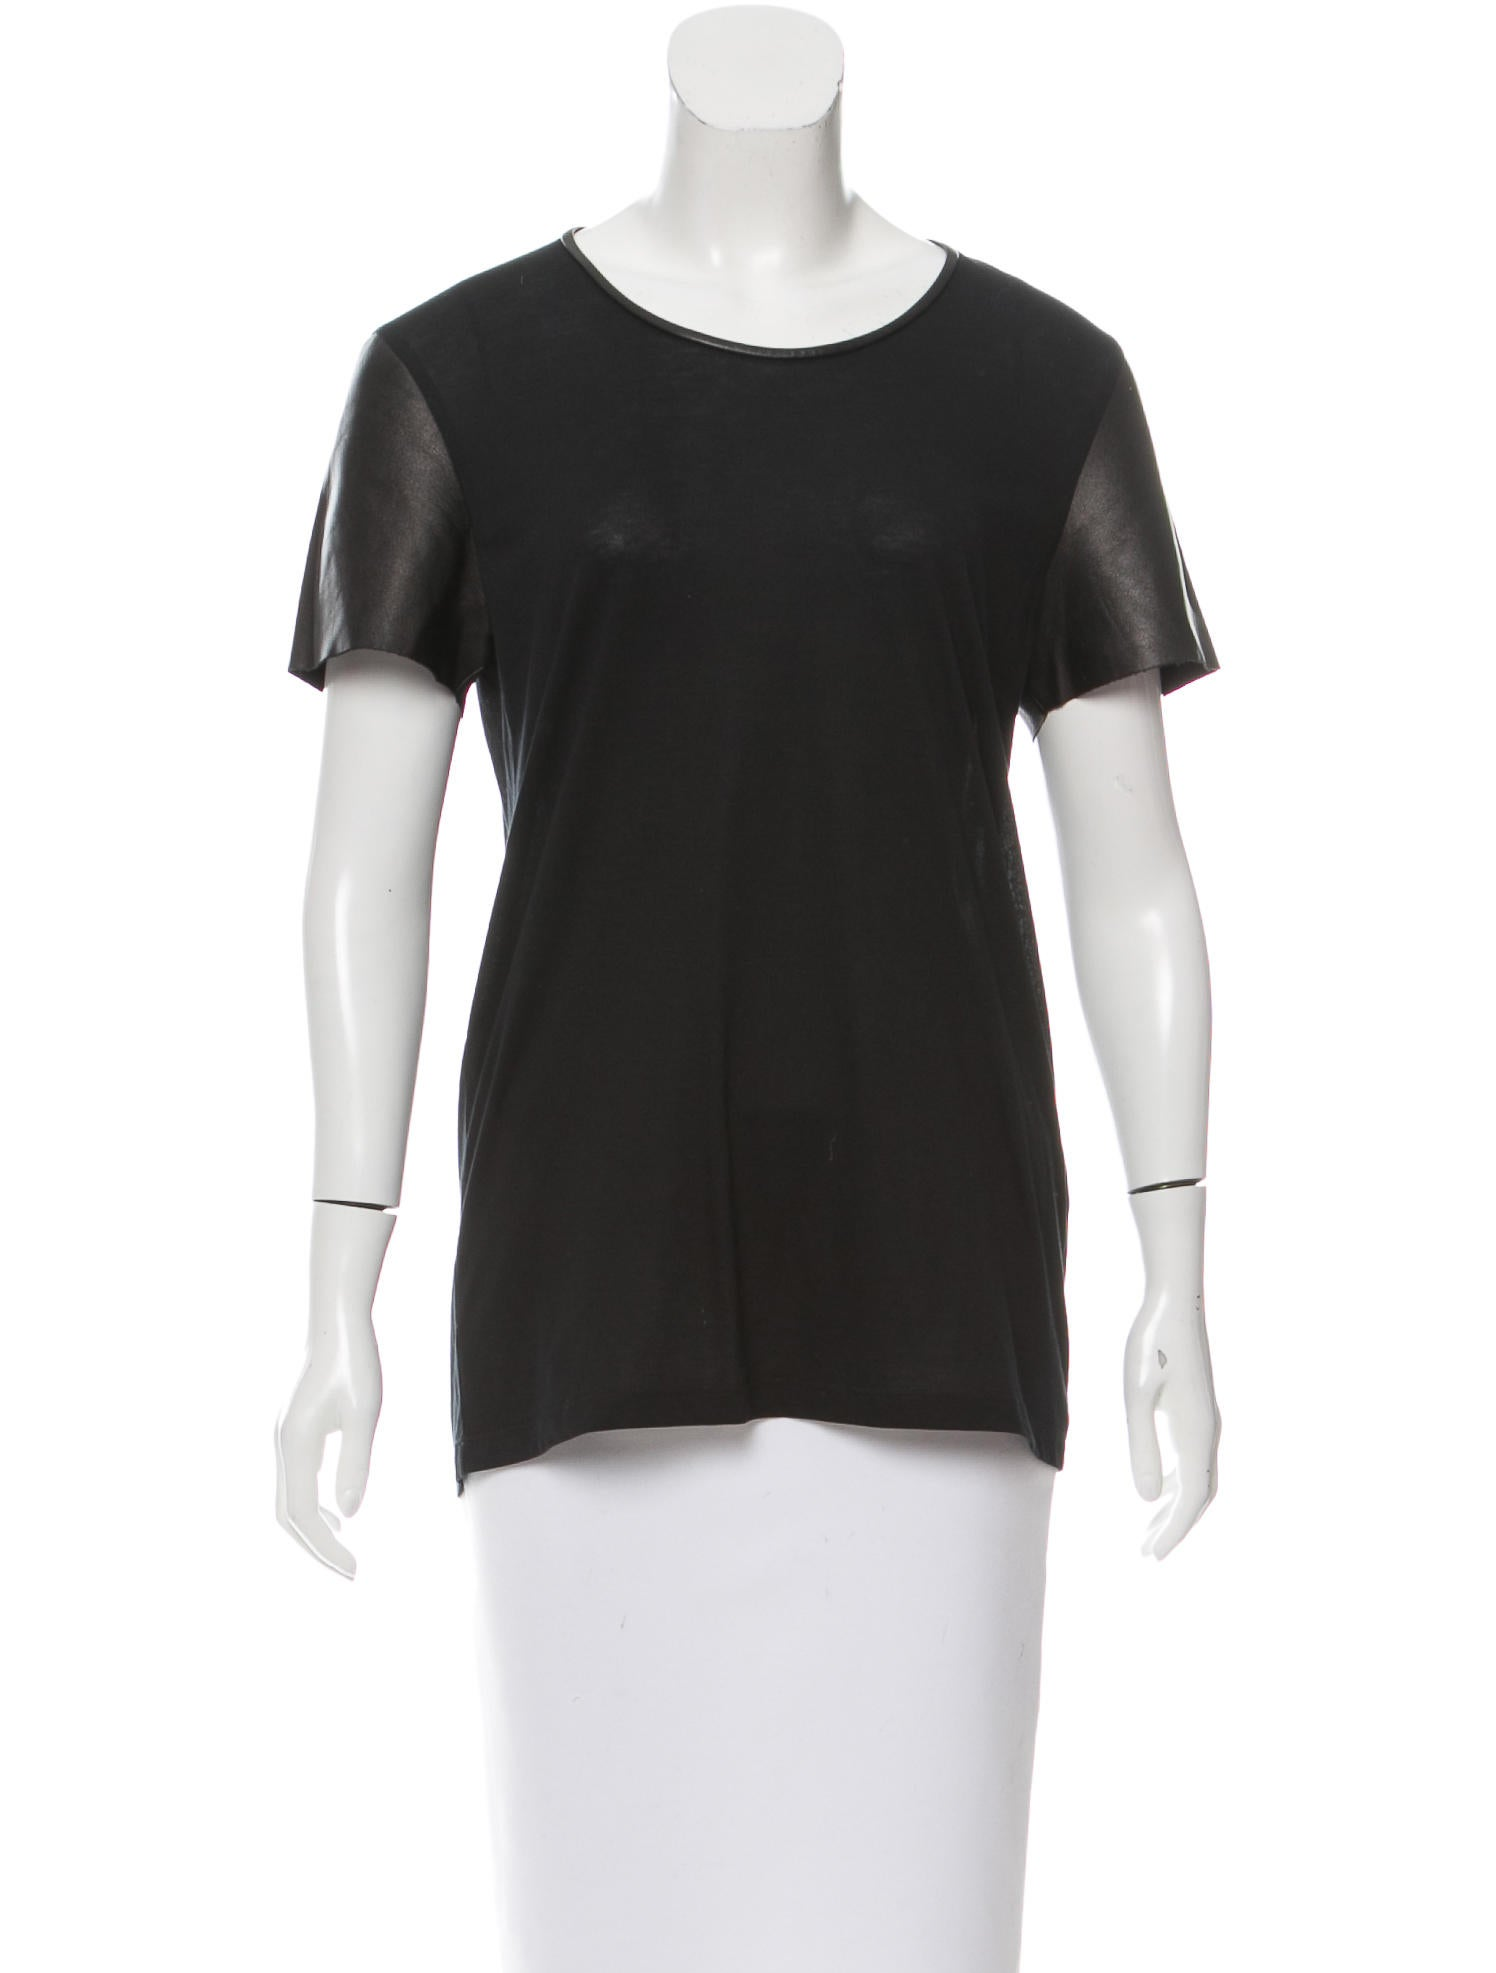 yves saint laurent leather paneled crew neck t shirt. Black Bedroom Furniture Sets. Home Design Ideas